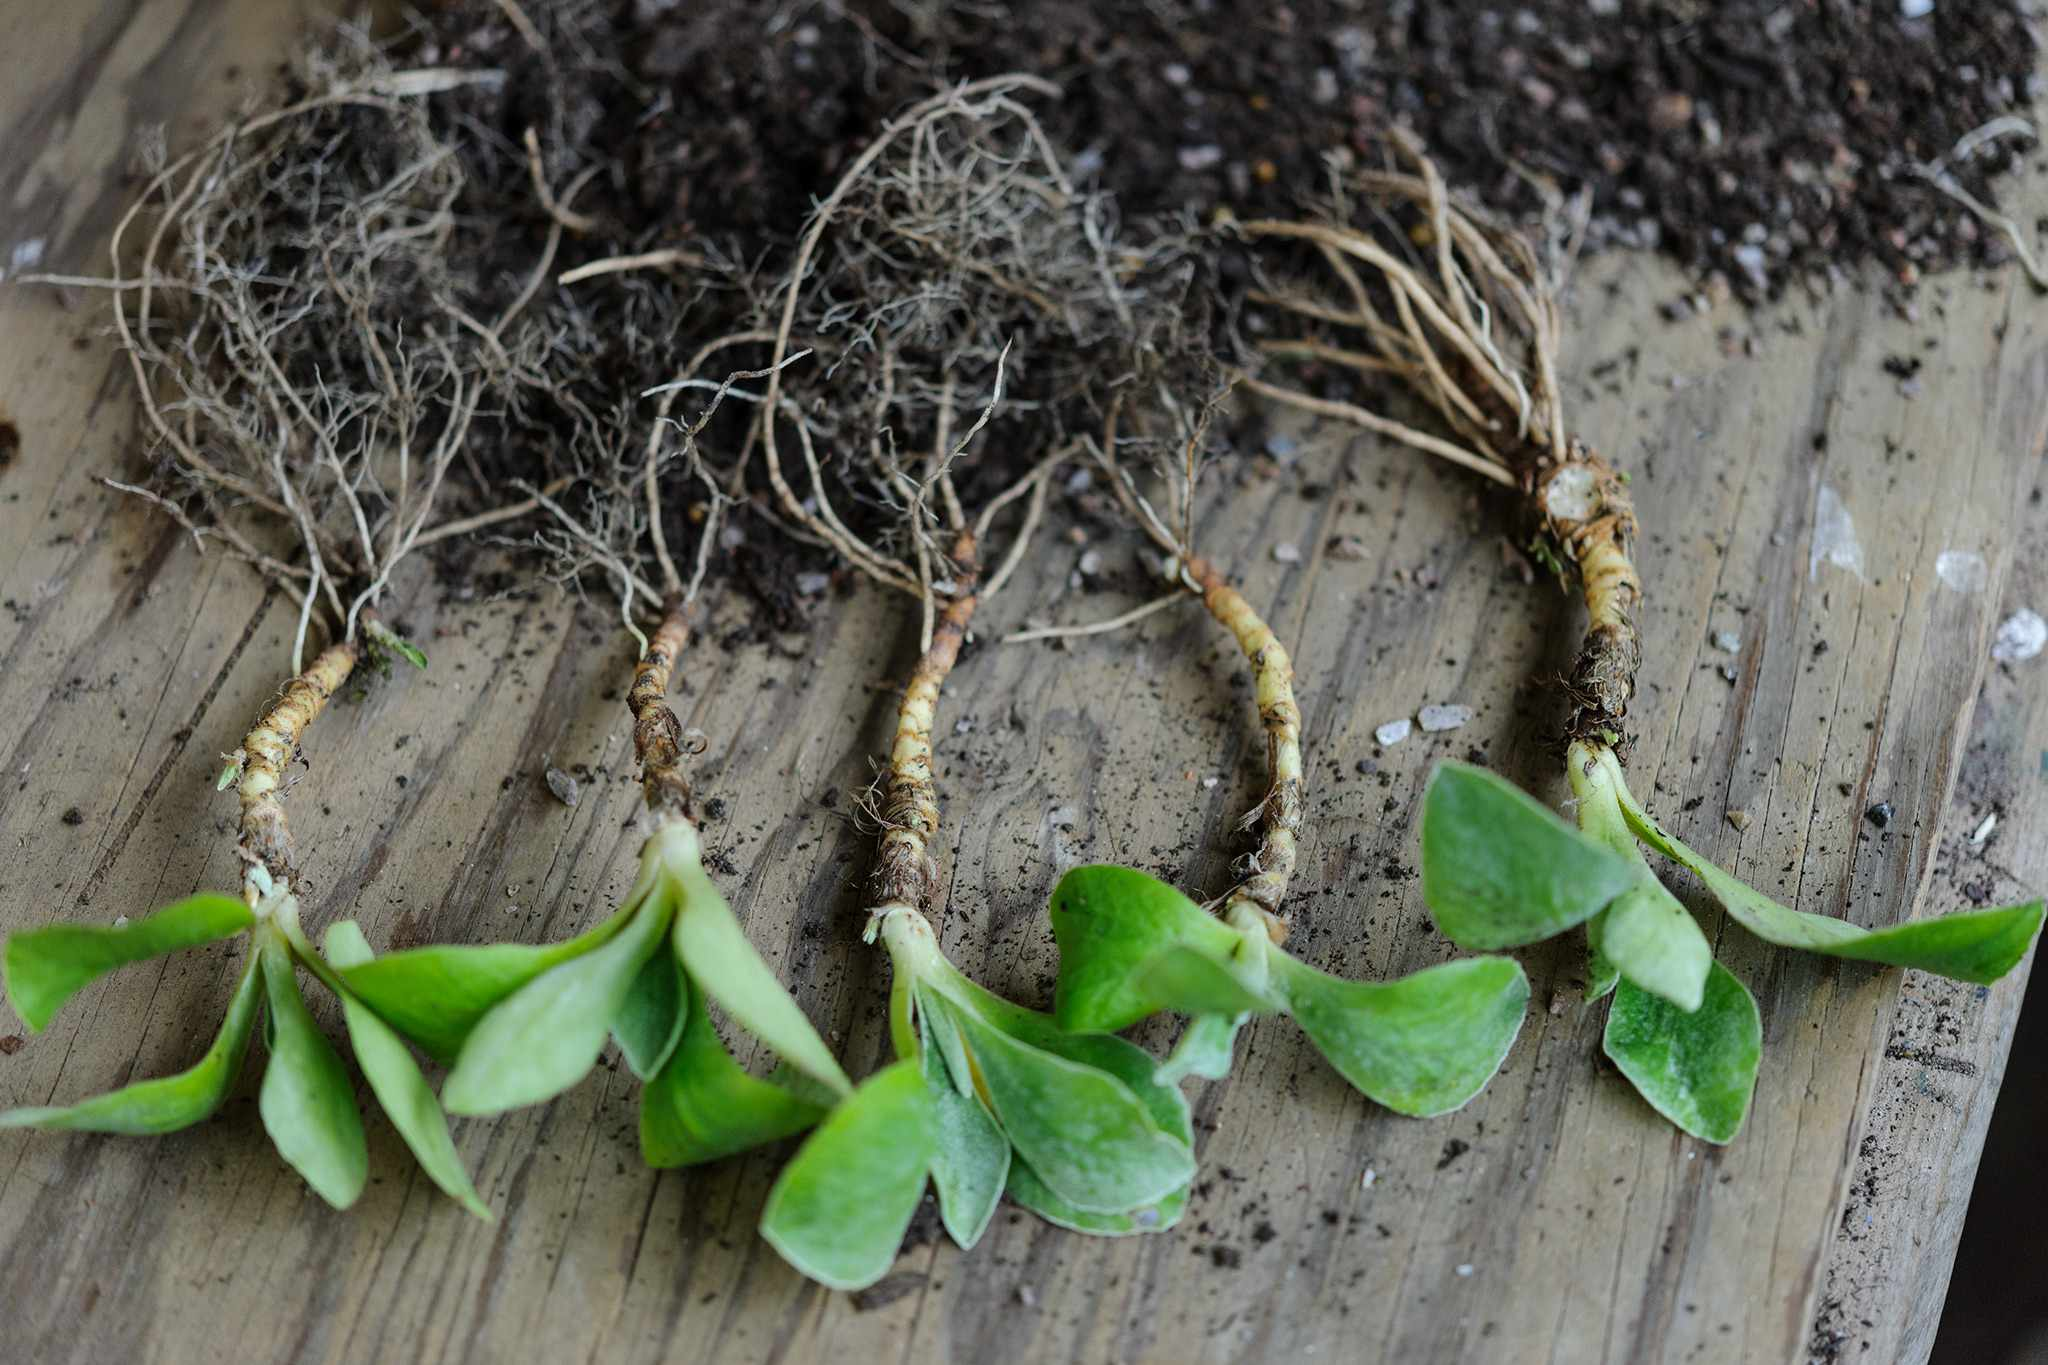 Divisions of auricula plants ready for replanting